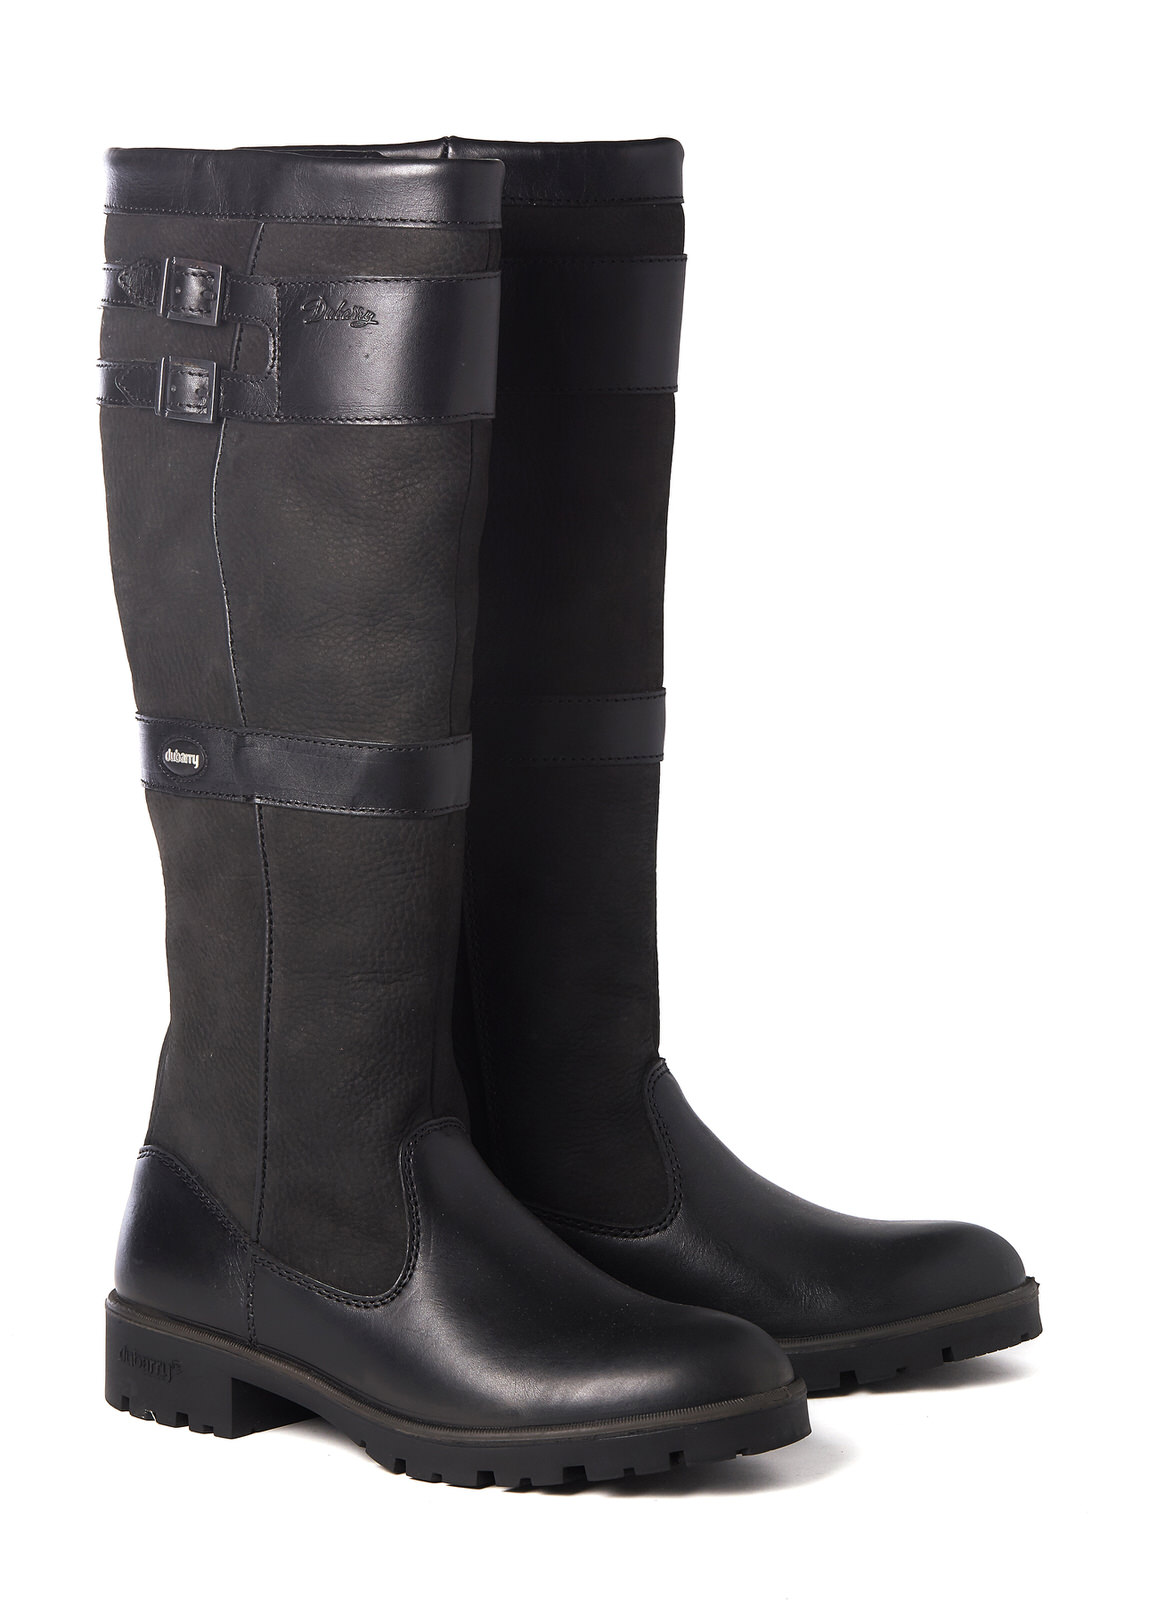 Bottes Longford par Dubarry - Black